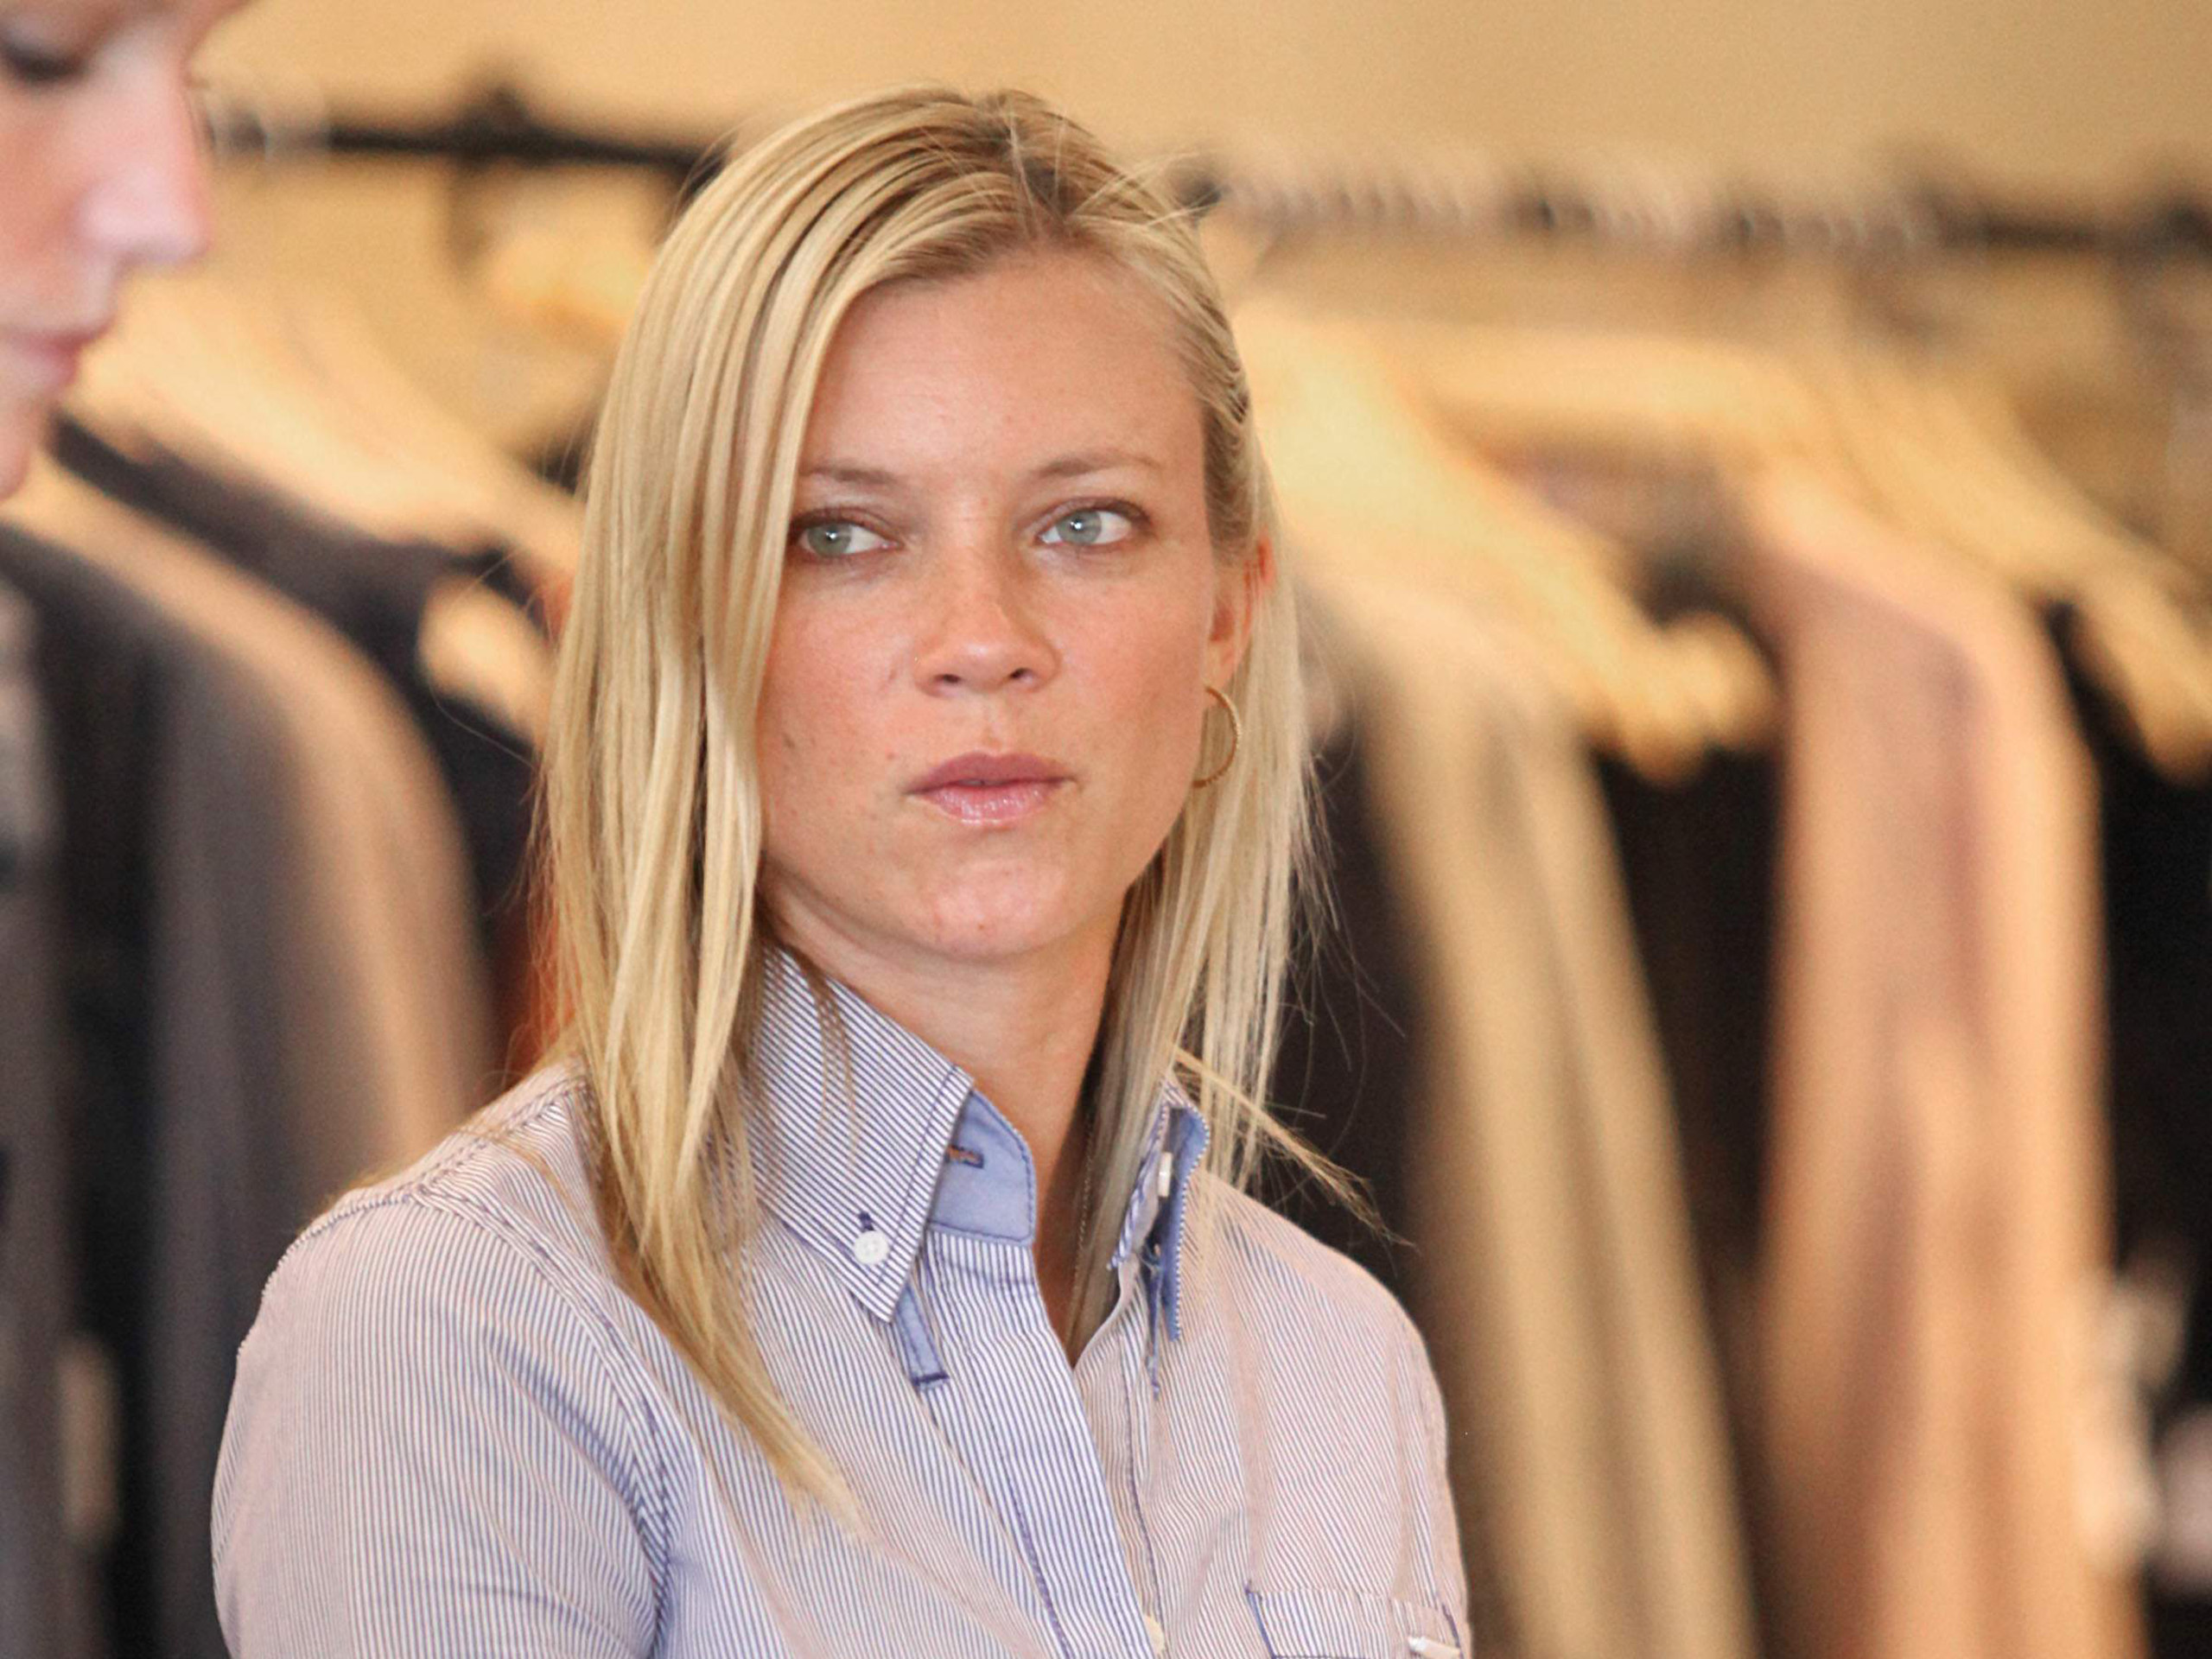 2560x1920 - Amy Smart Wallpapers 22